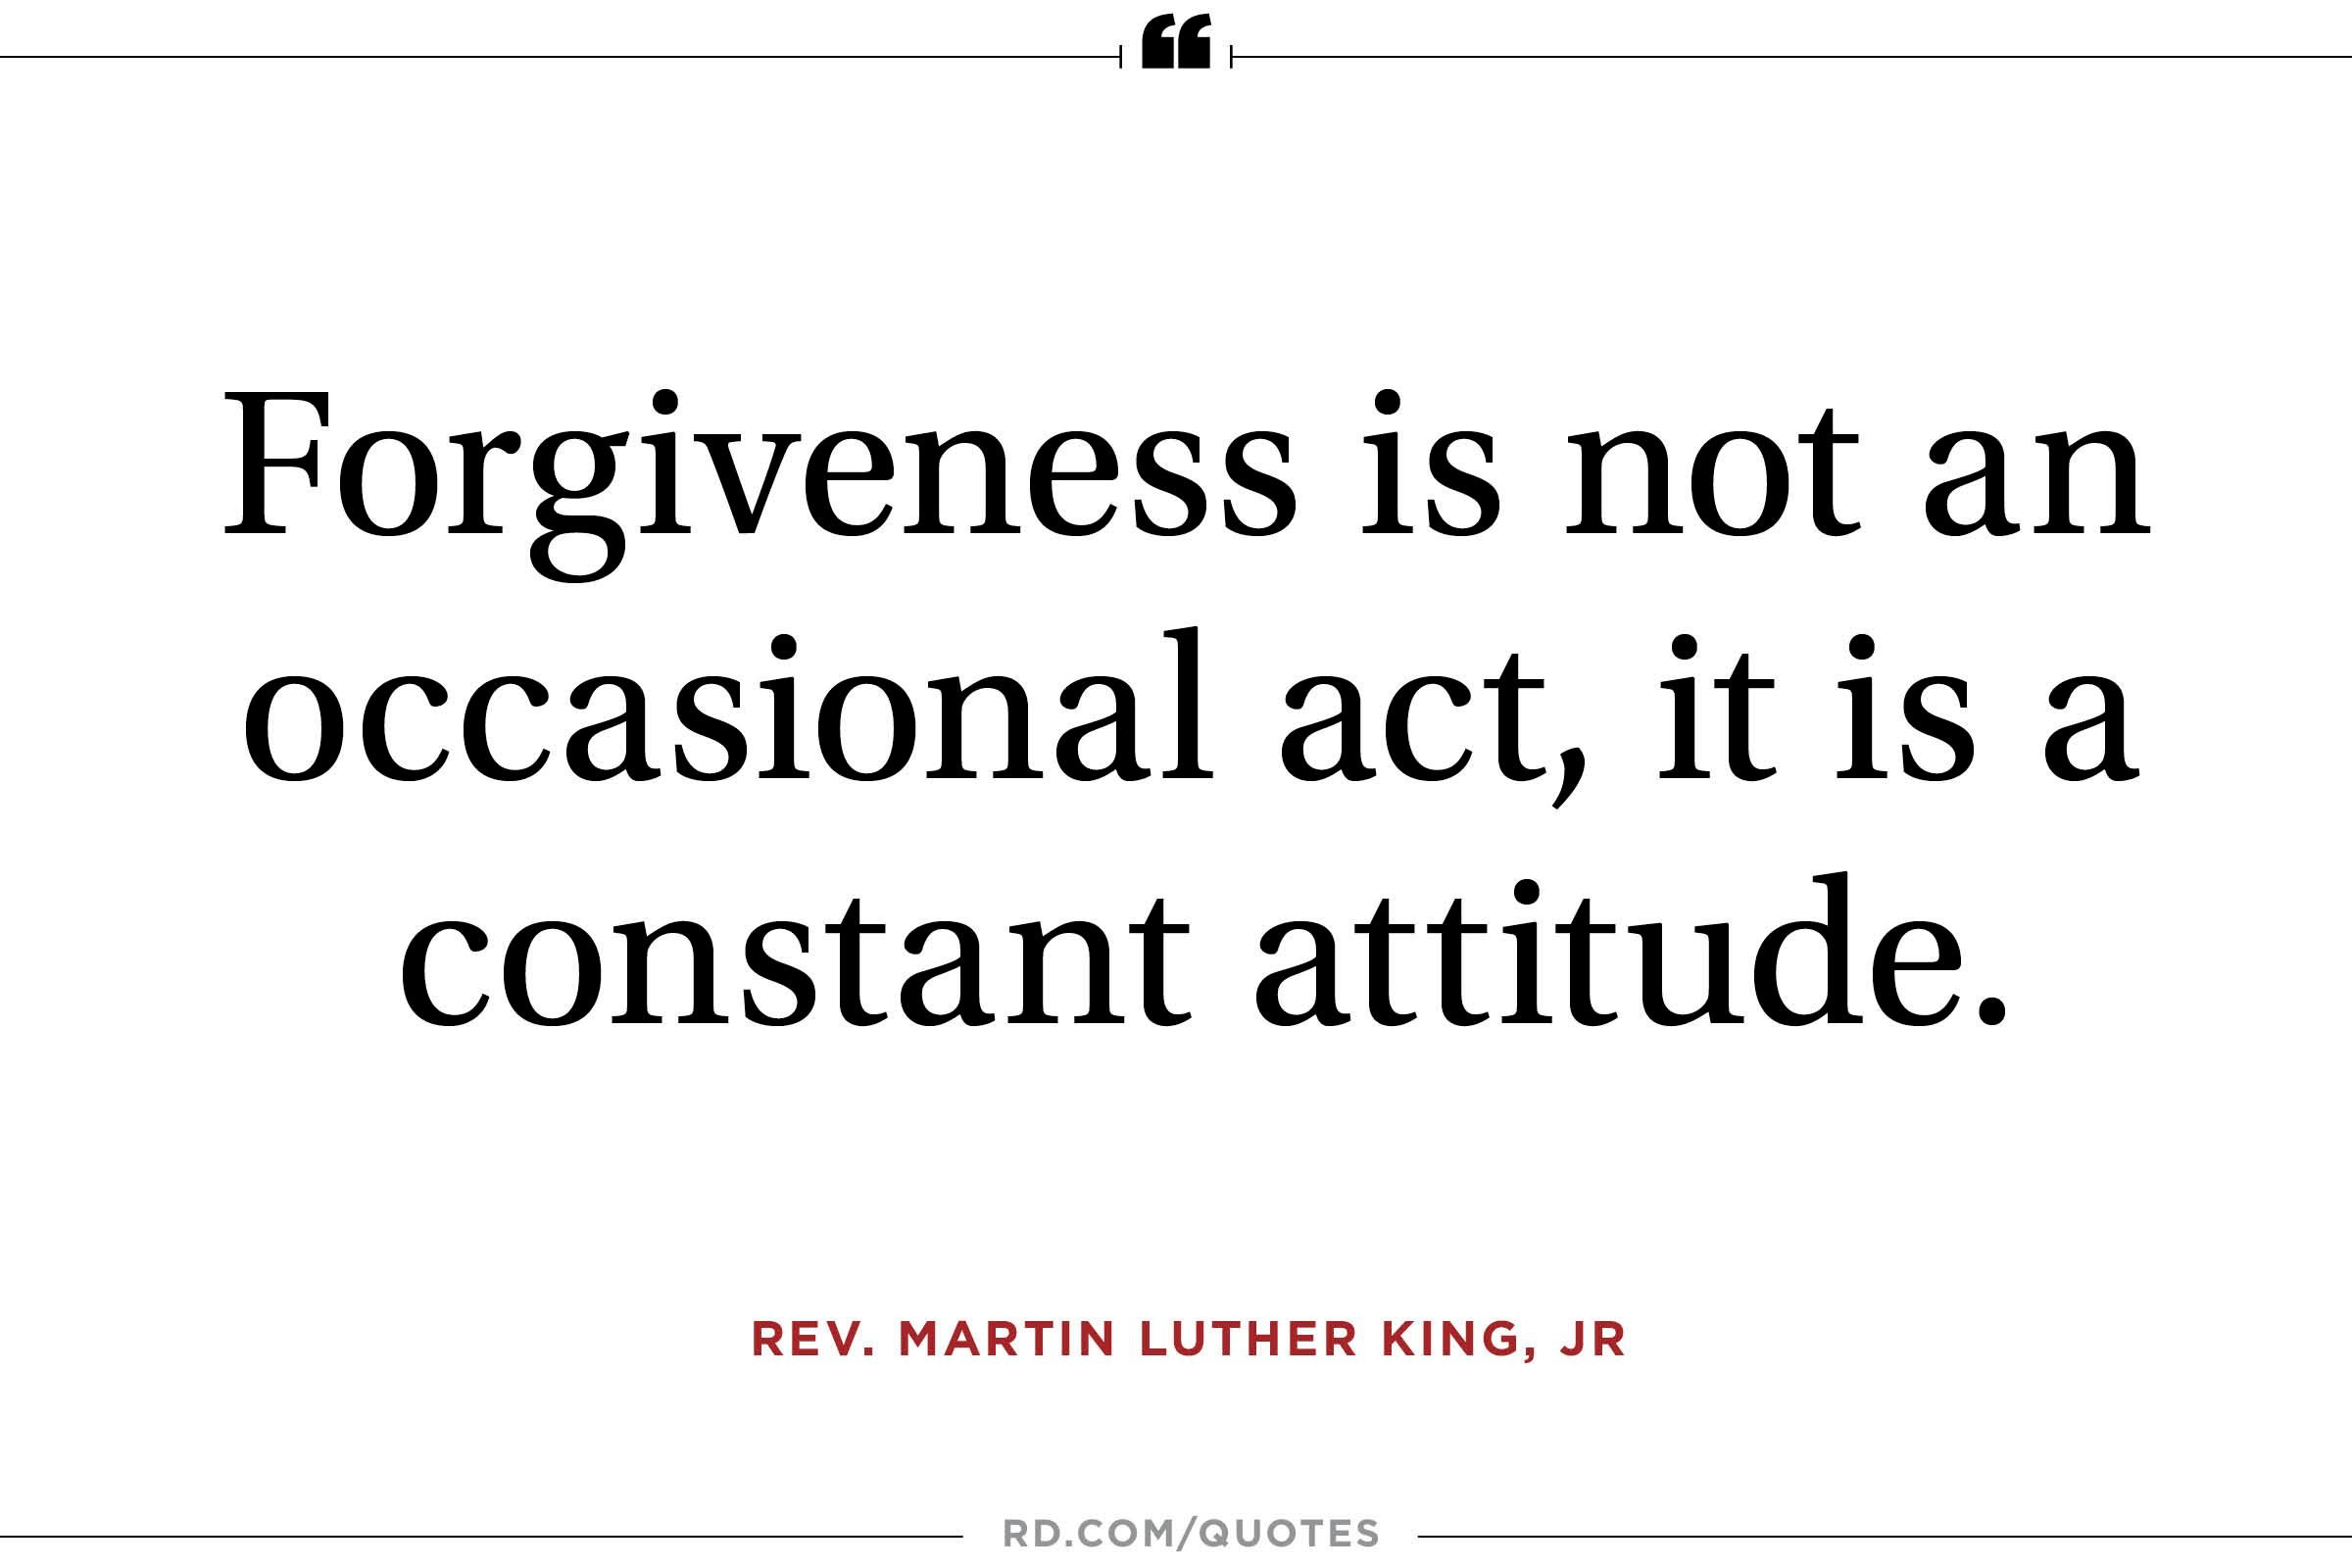 Quotes On Forgiveness 19 Forgivness Quotes  Reader's Digest